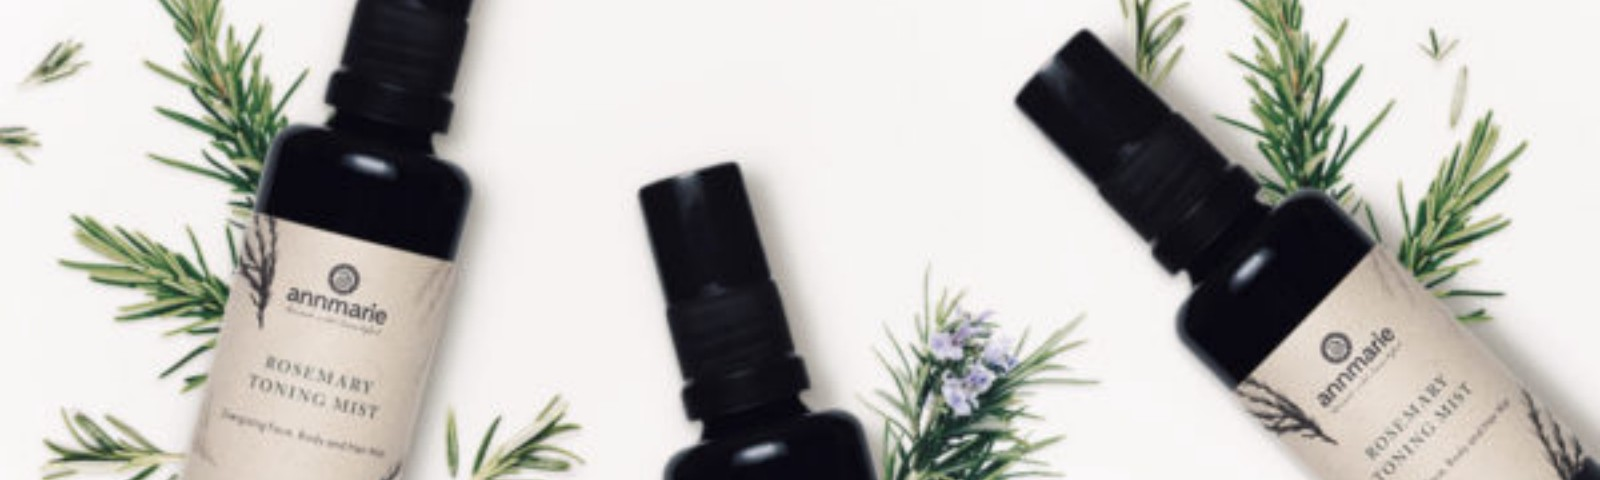 Simple Soothing Toners For Your Face